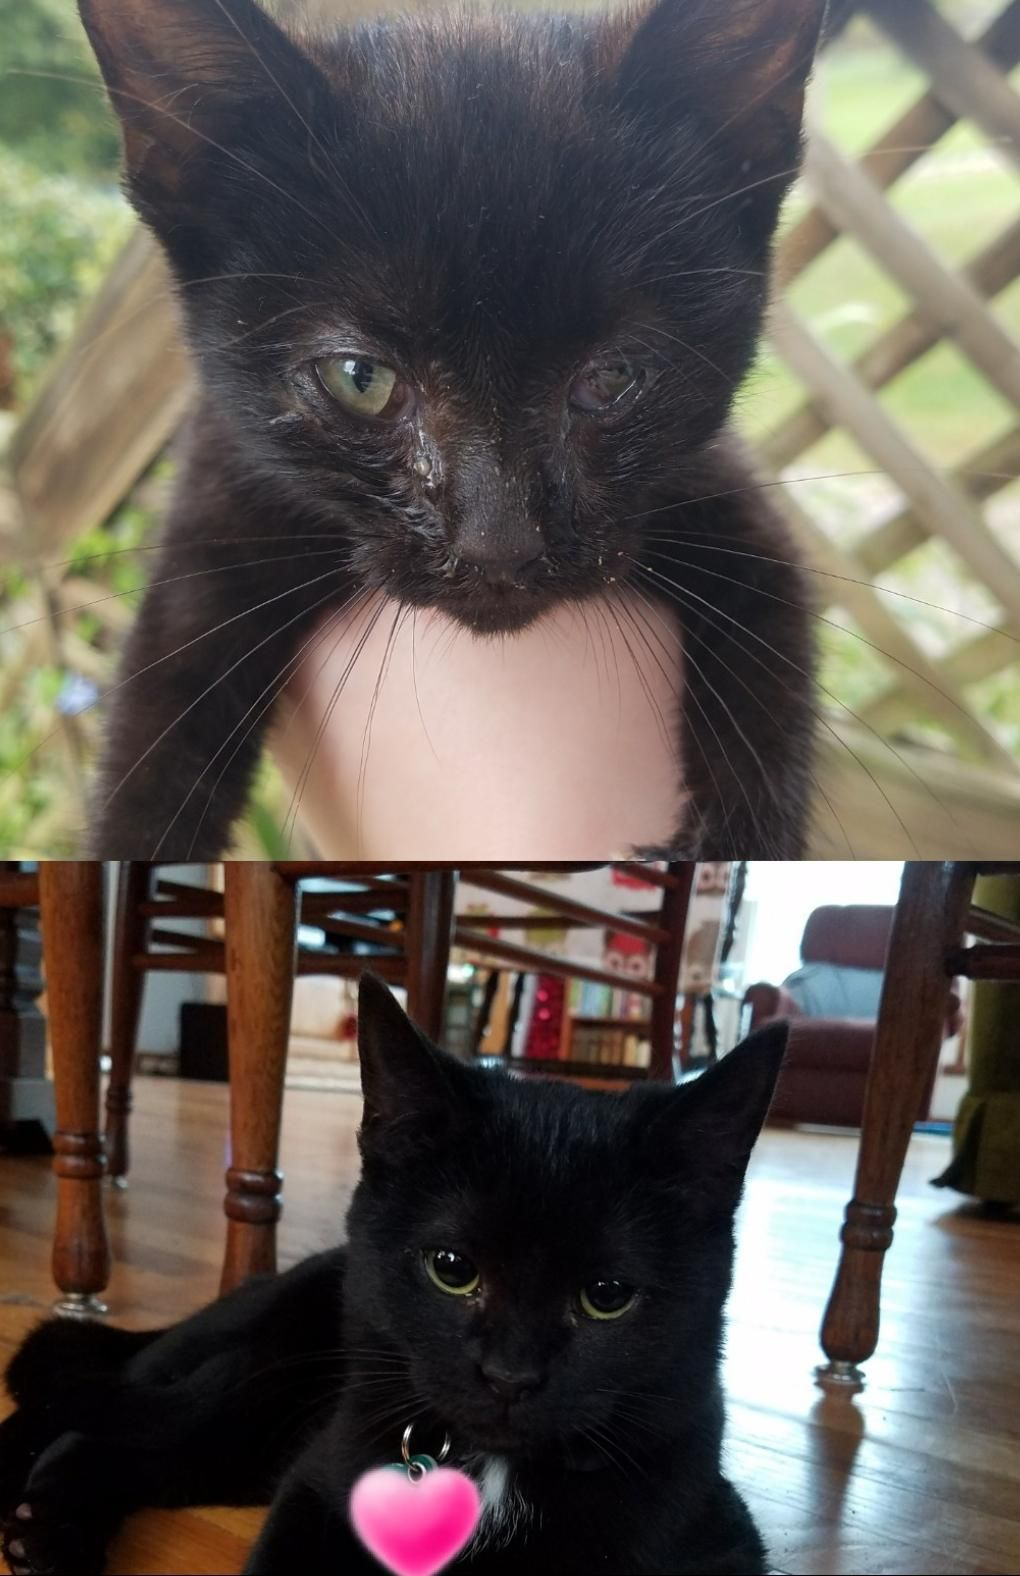 Before And After 6 Months Ago My Batley Was A Scrawny Sickly Stray Now She Is Happy Healthy And Loved I Redd It Submitted By Kittens Cutest Cute Cats Pets